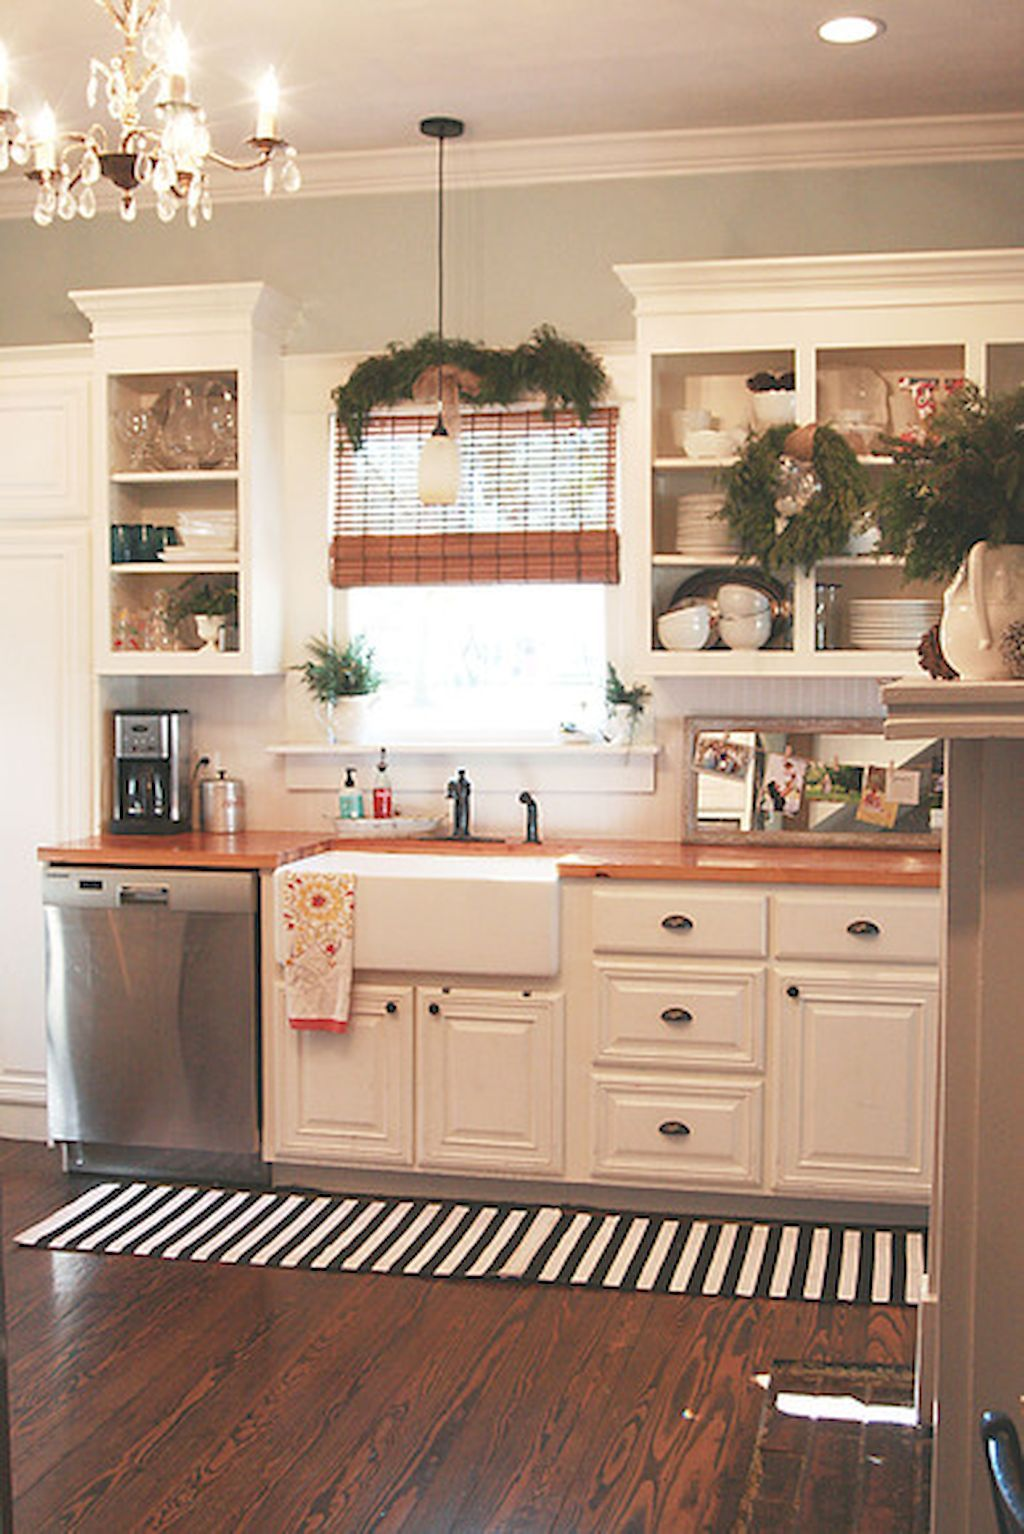 Gorgeous small kitchen remodel ideas kitchens and remodeled